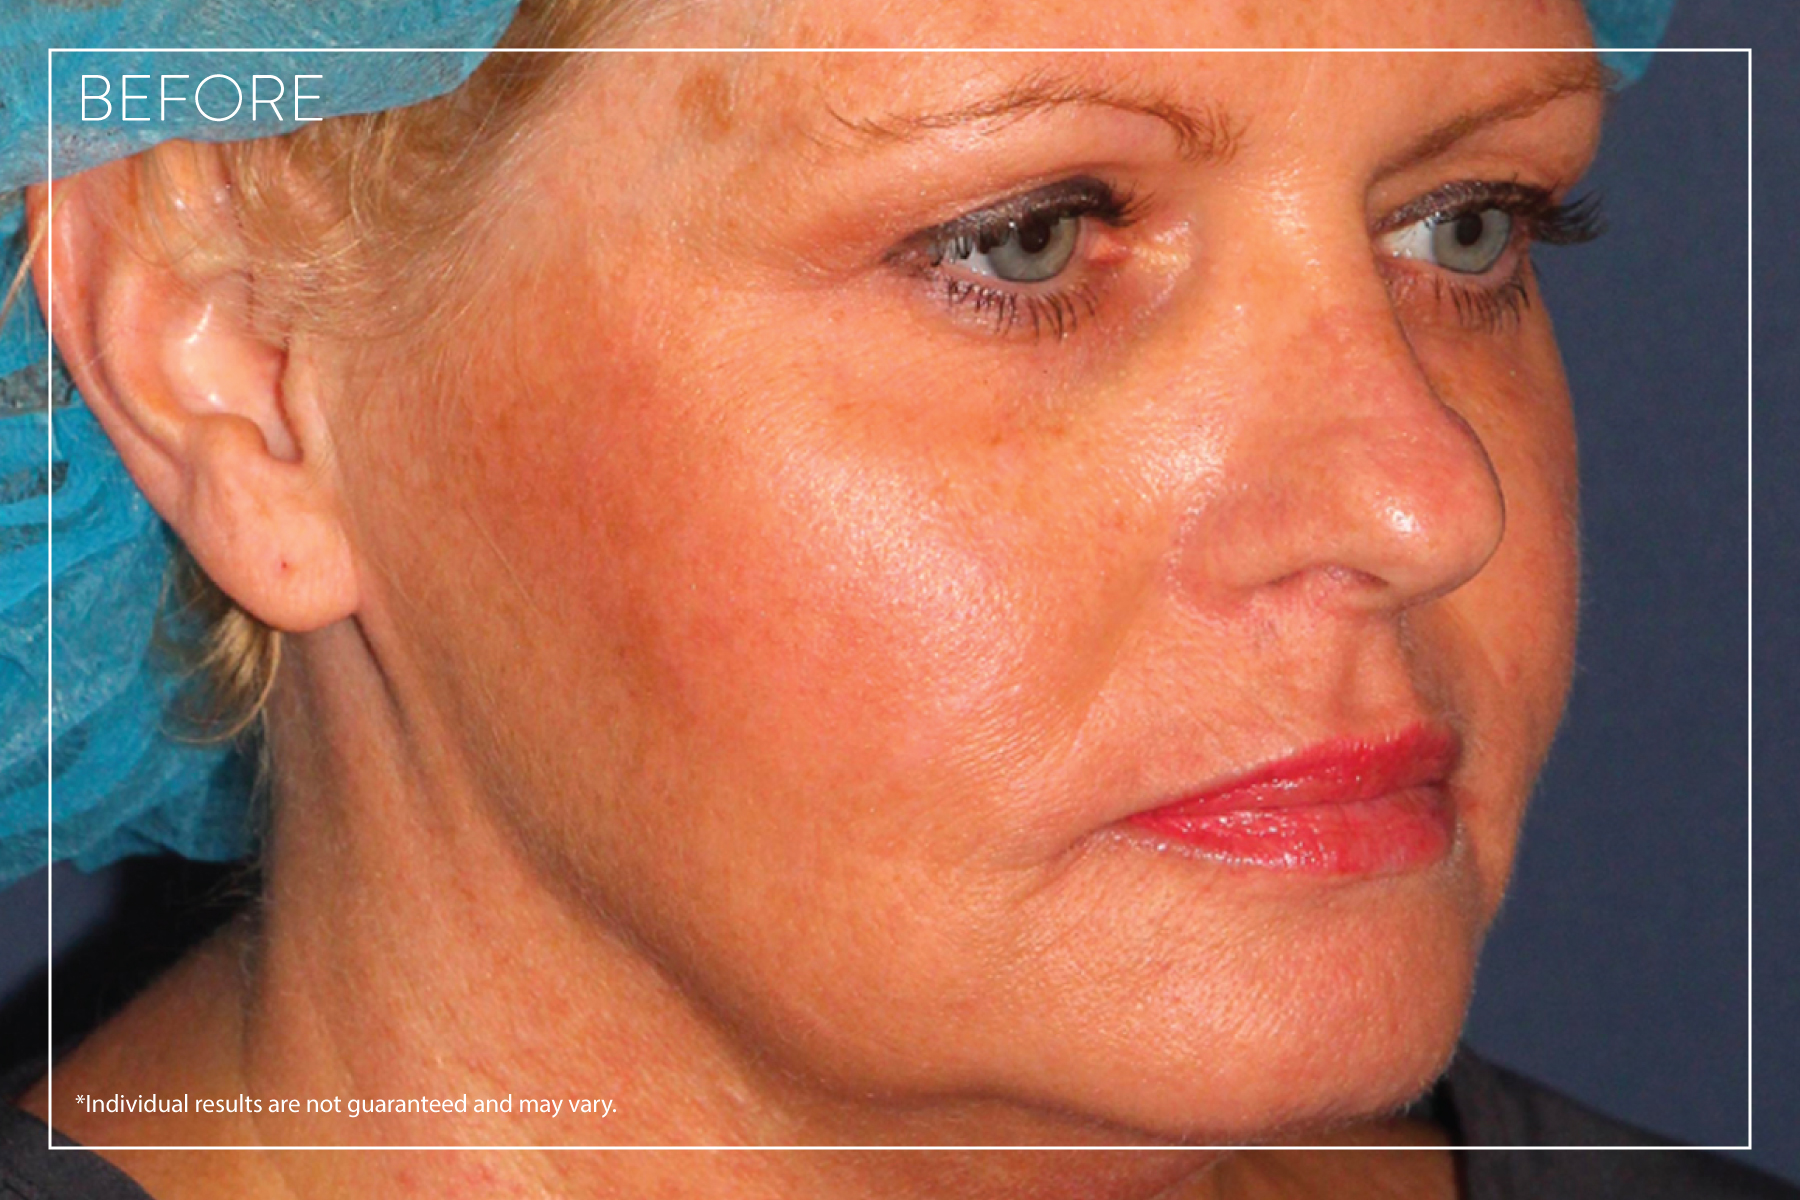 InstaLift Before Photo - Concierge Aesthetics - Irvine - Before and After Photo